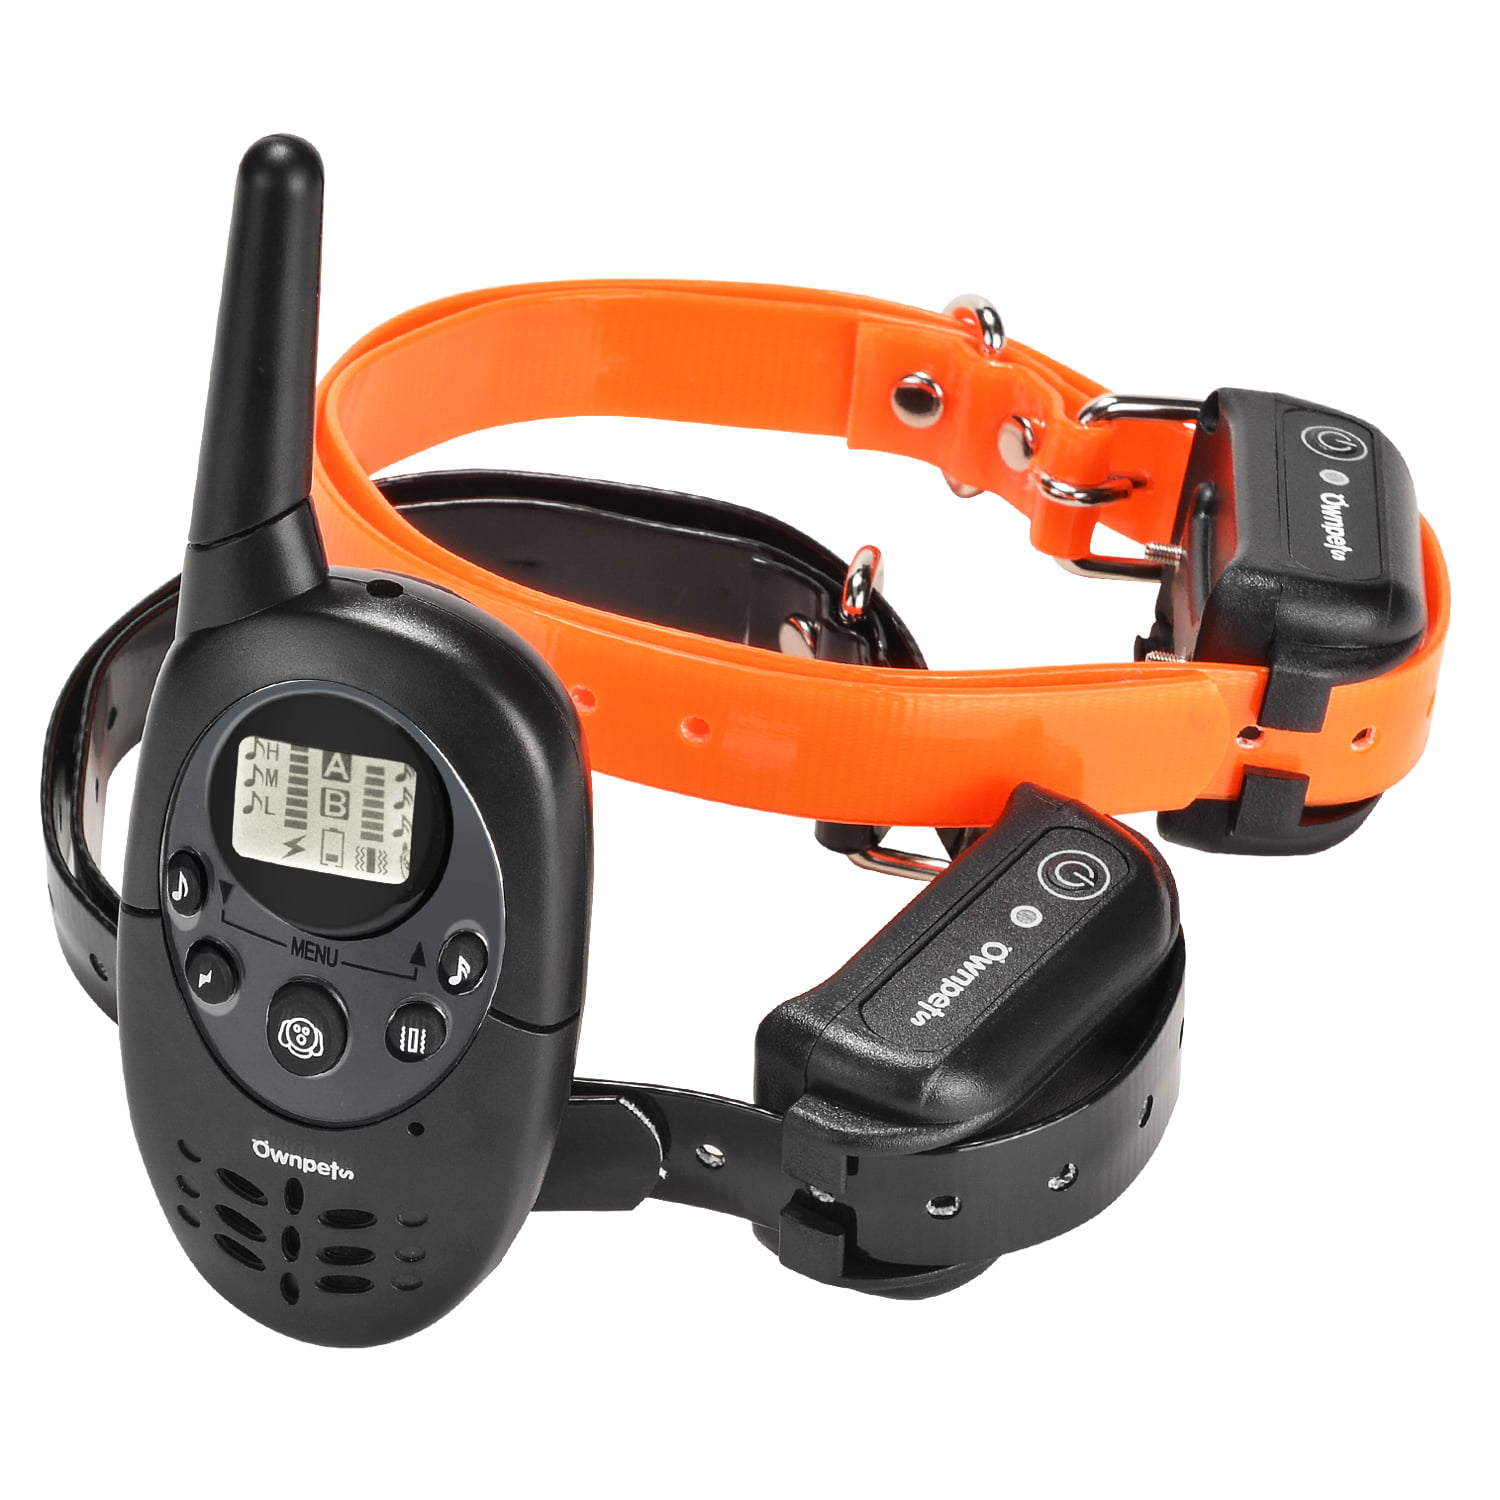 Fcolor Dog Training Collar Upgraded 1400ft Remote